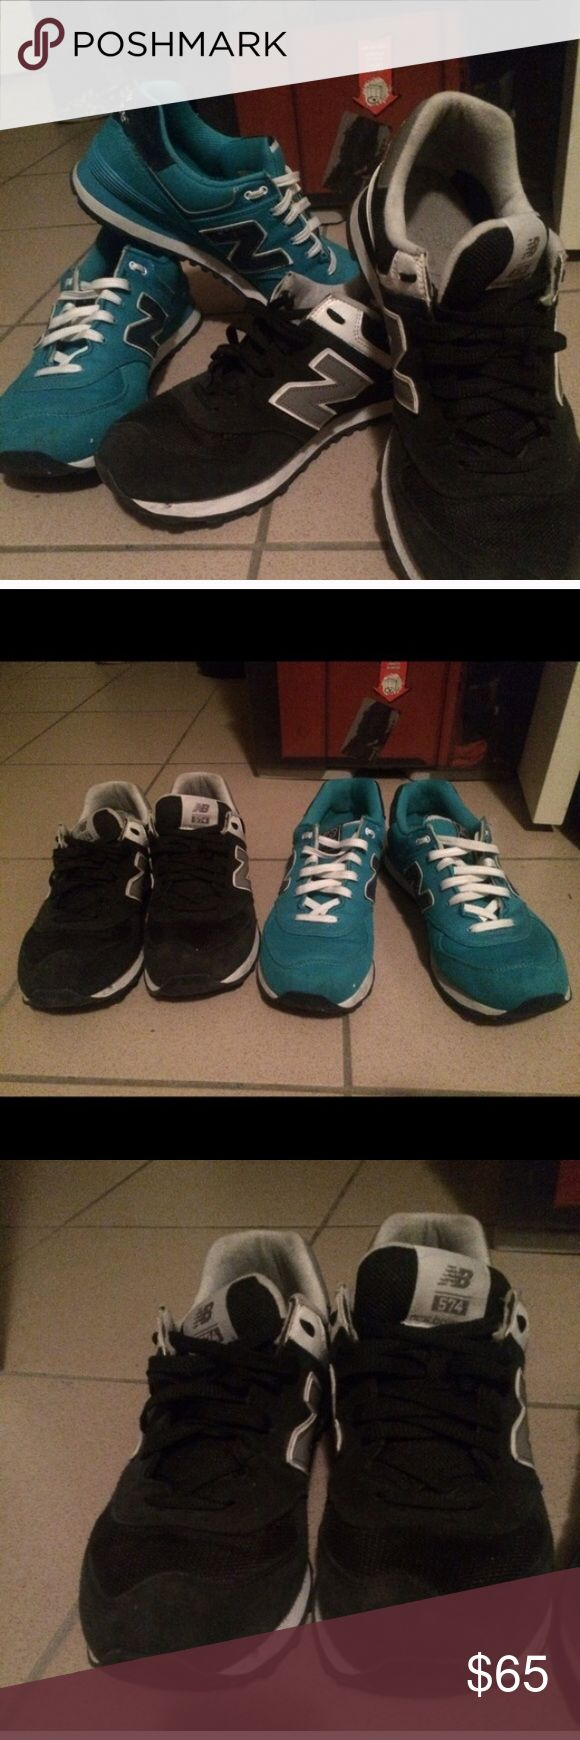 NEW BALANCE Still have a lot of life left..... Aqua blue and black new balances size 11 in women. $65 each or $100 for both New Balance Shoes Sneakers